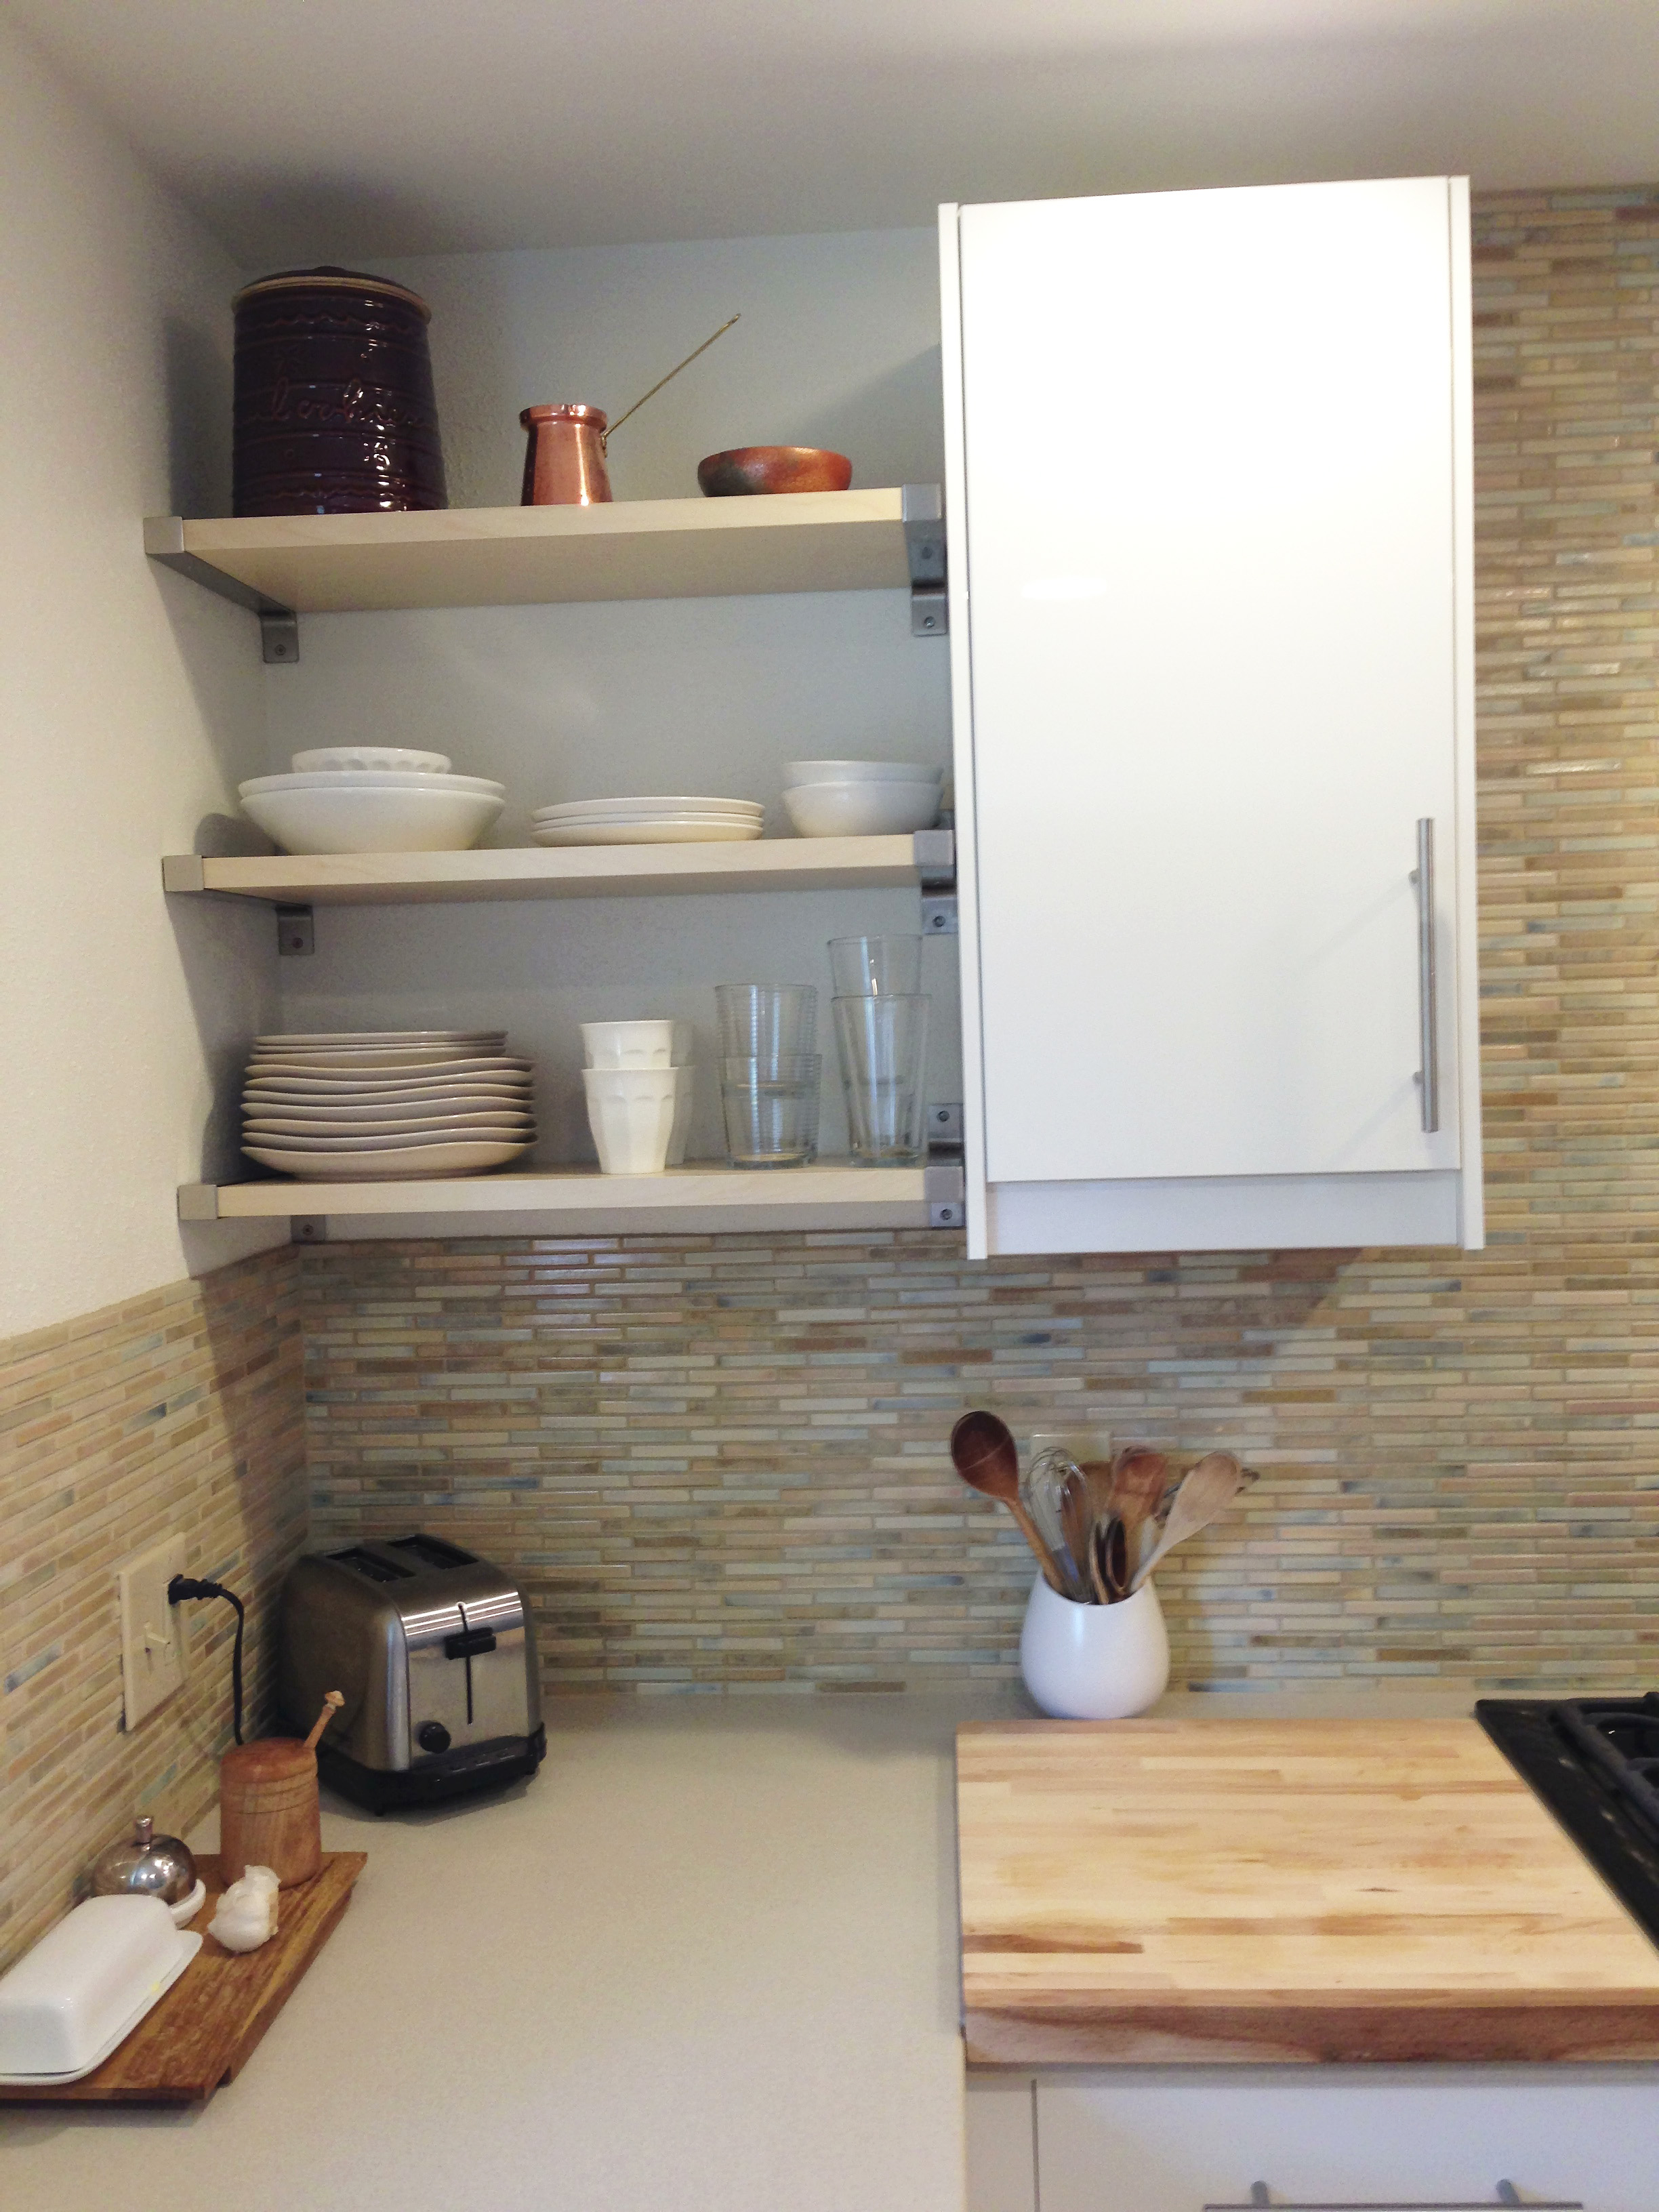 The Pros and Cons of Open Shelving in the Kitchen